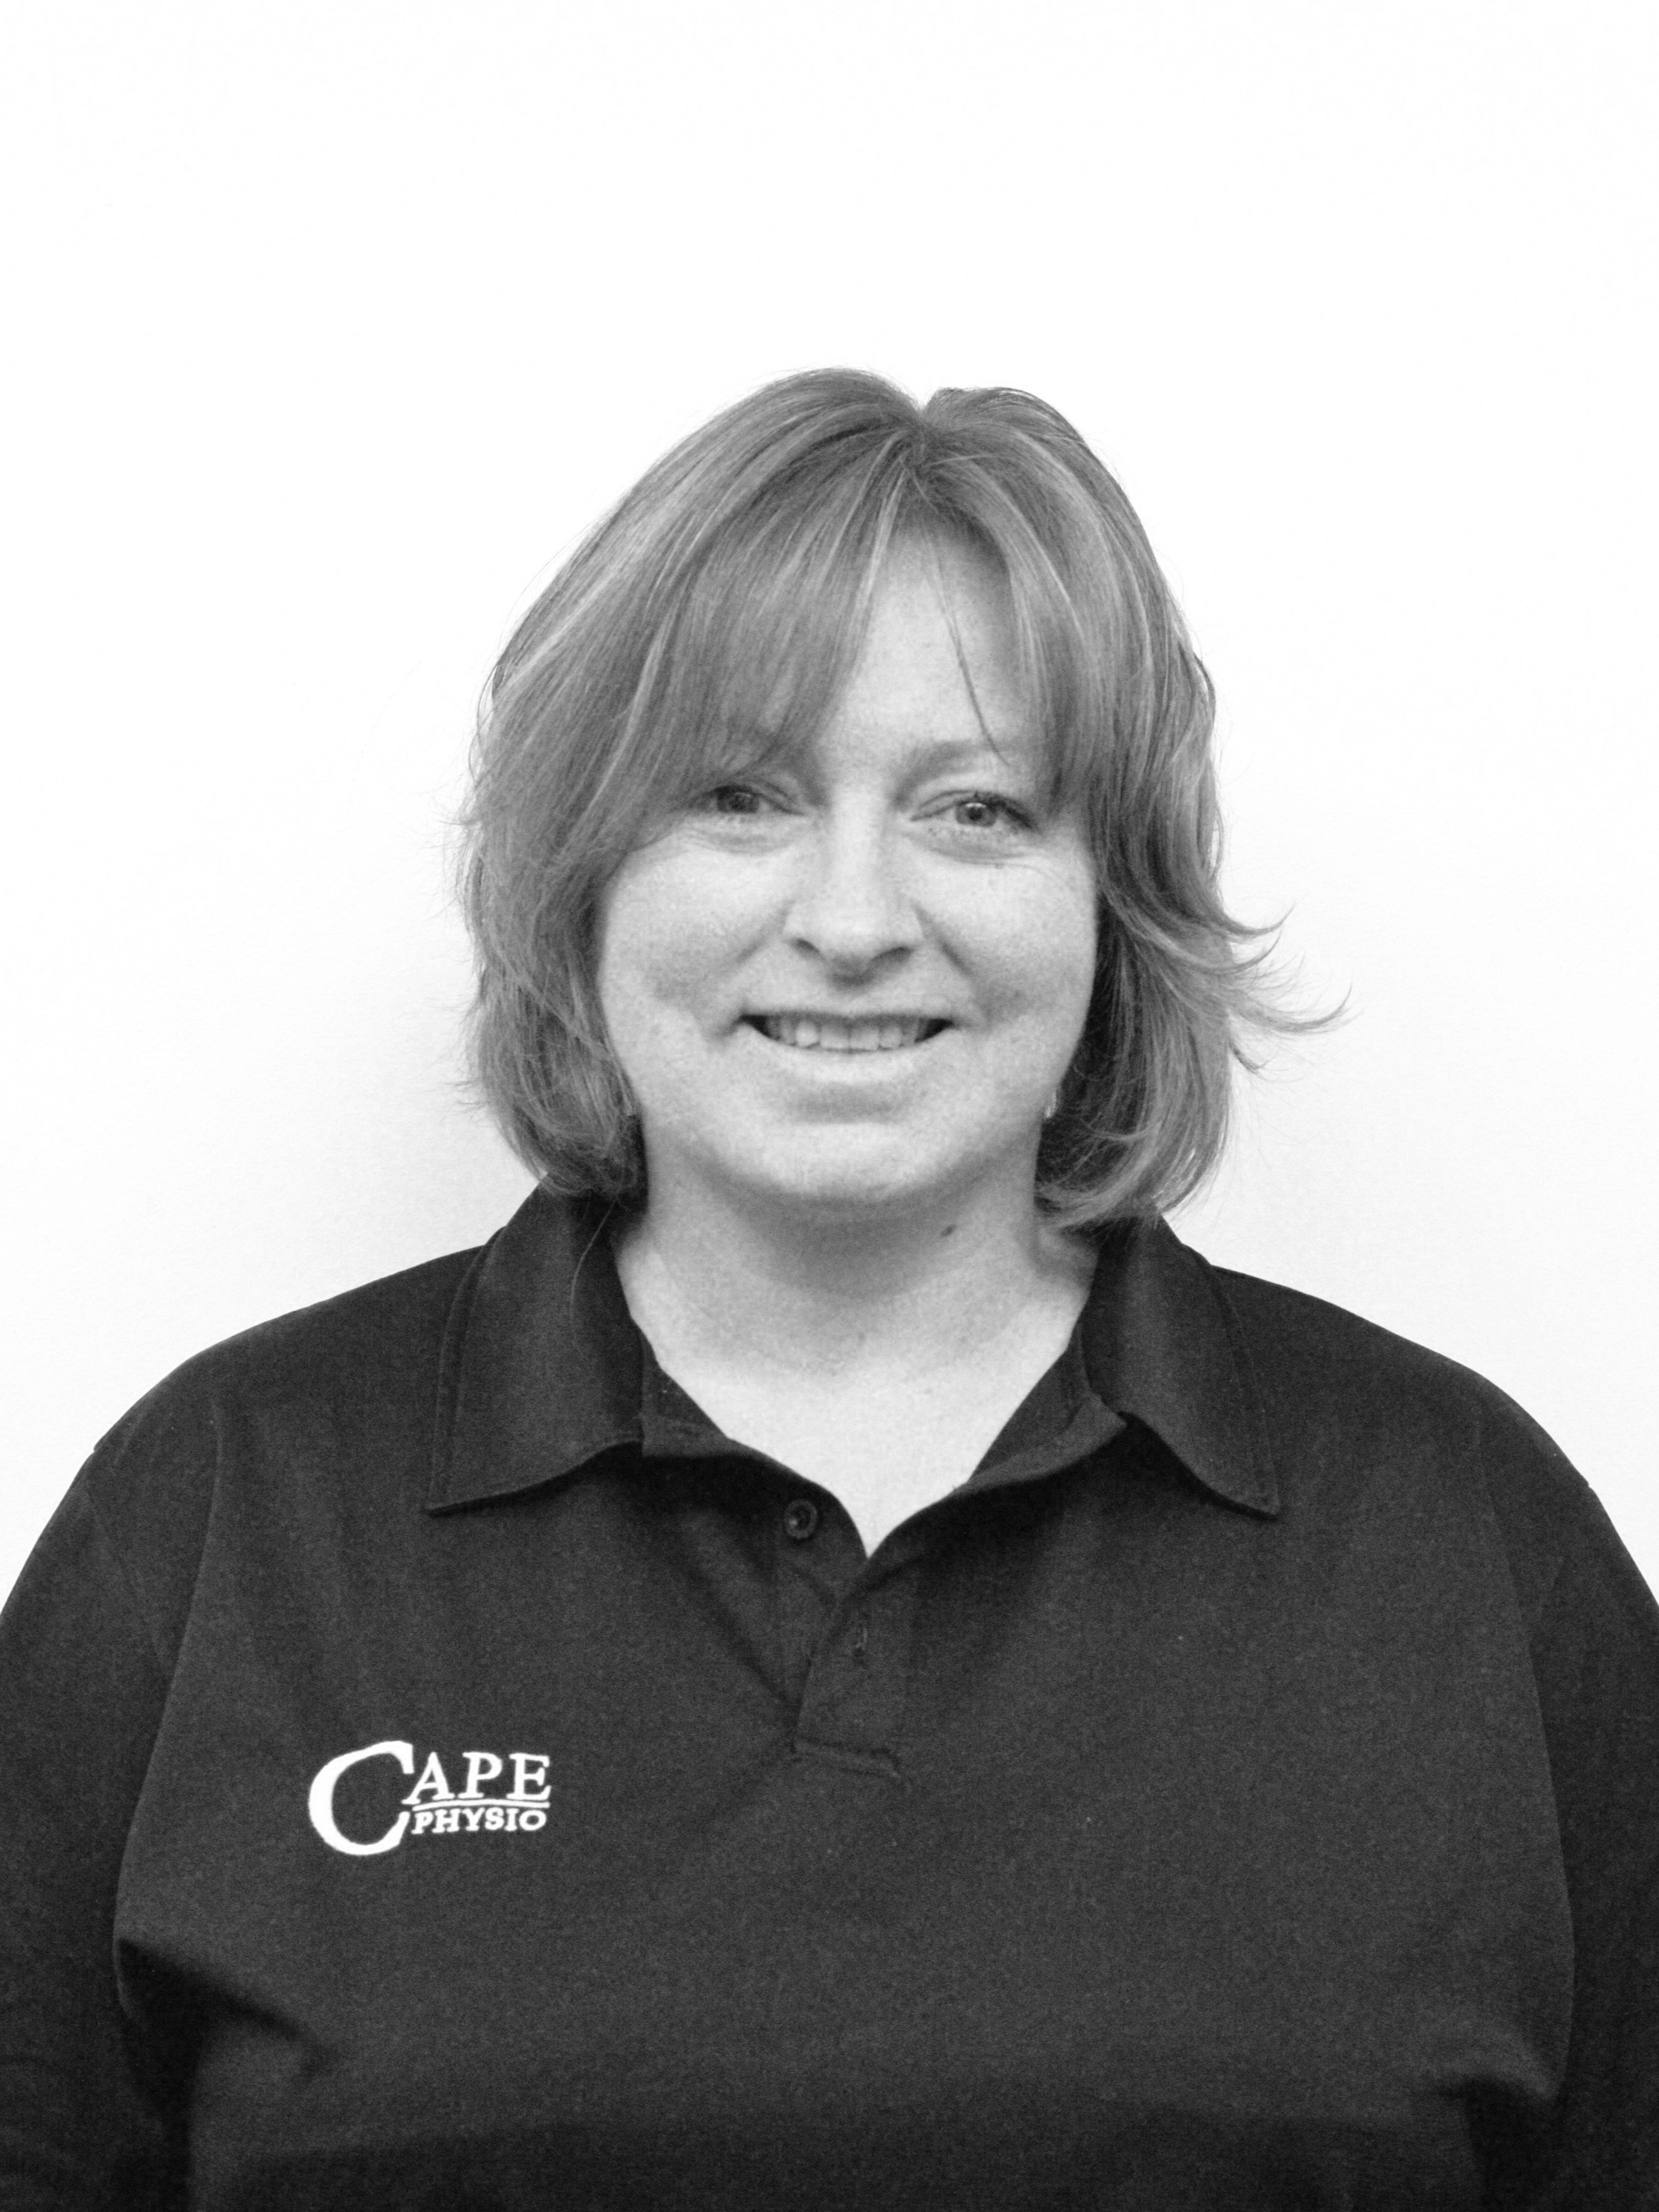 Kathleen Carswell - Senior Physiotherapist   Emigrated to NZ 2017 from UK. Qualified 1993 and career focus has always been on Musculoskeletal conditions. Have worked for Scottish Rugby and Sport Scotland as well as being a director of a sports injury practice in Glasgow. Now enjoying a quieter pace of life here with her family and happy seeing a good variety of clients at CAPE Physio Taradale.